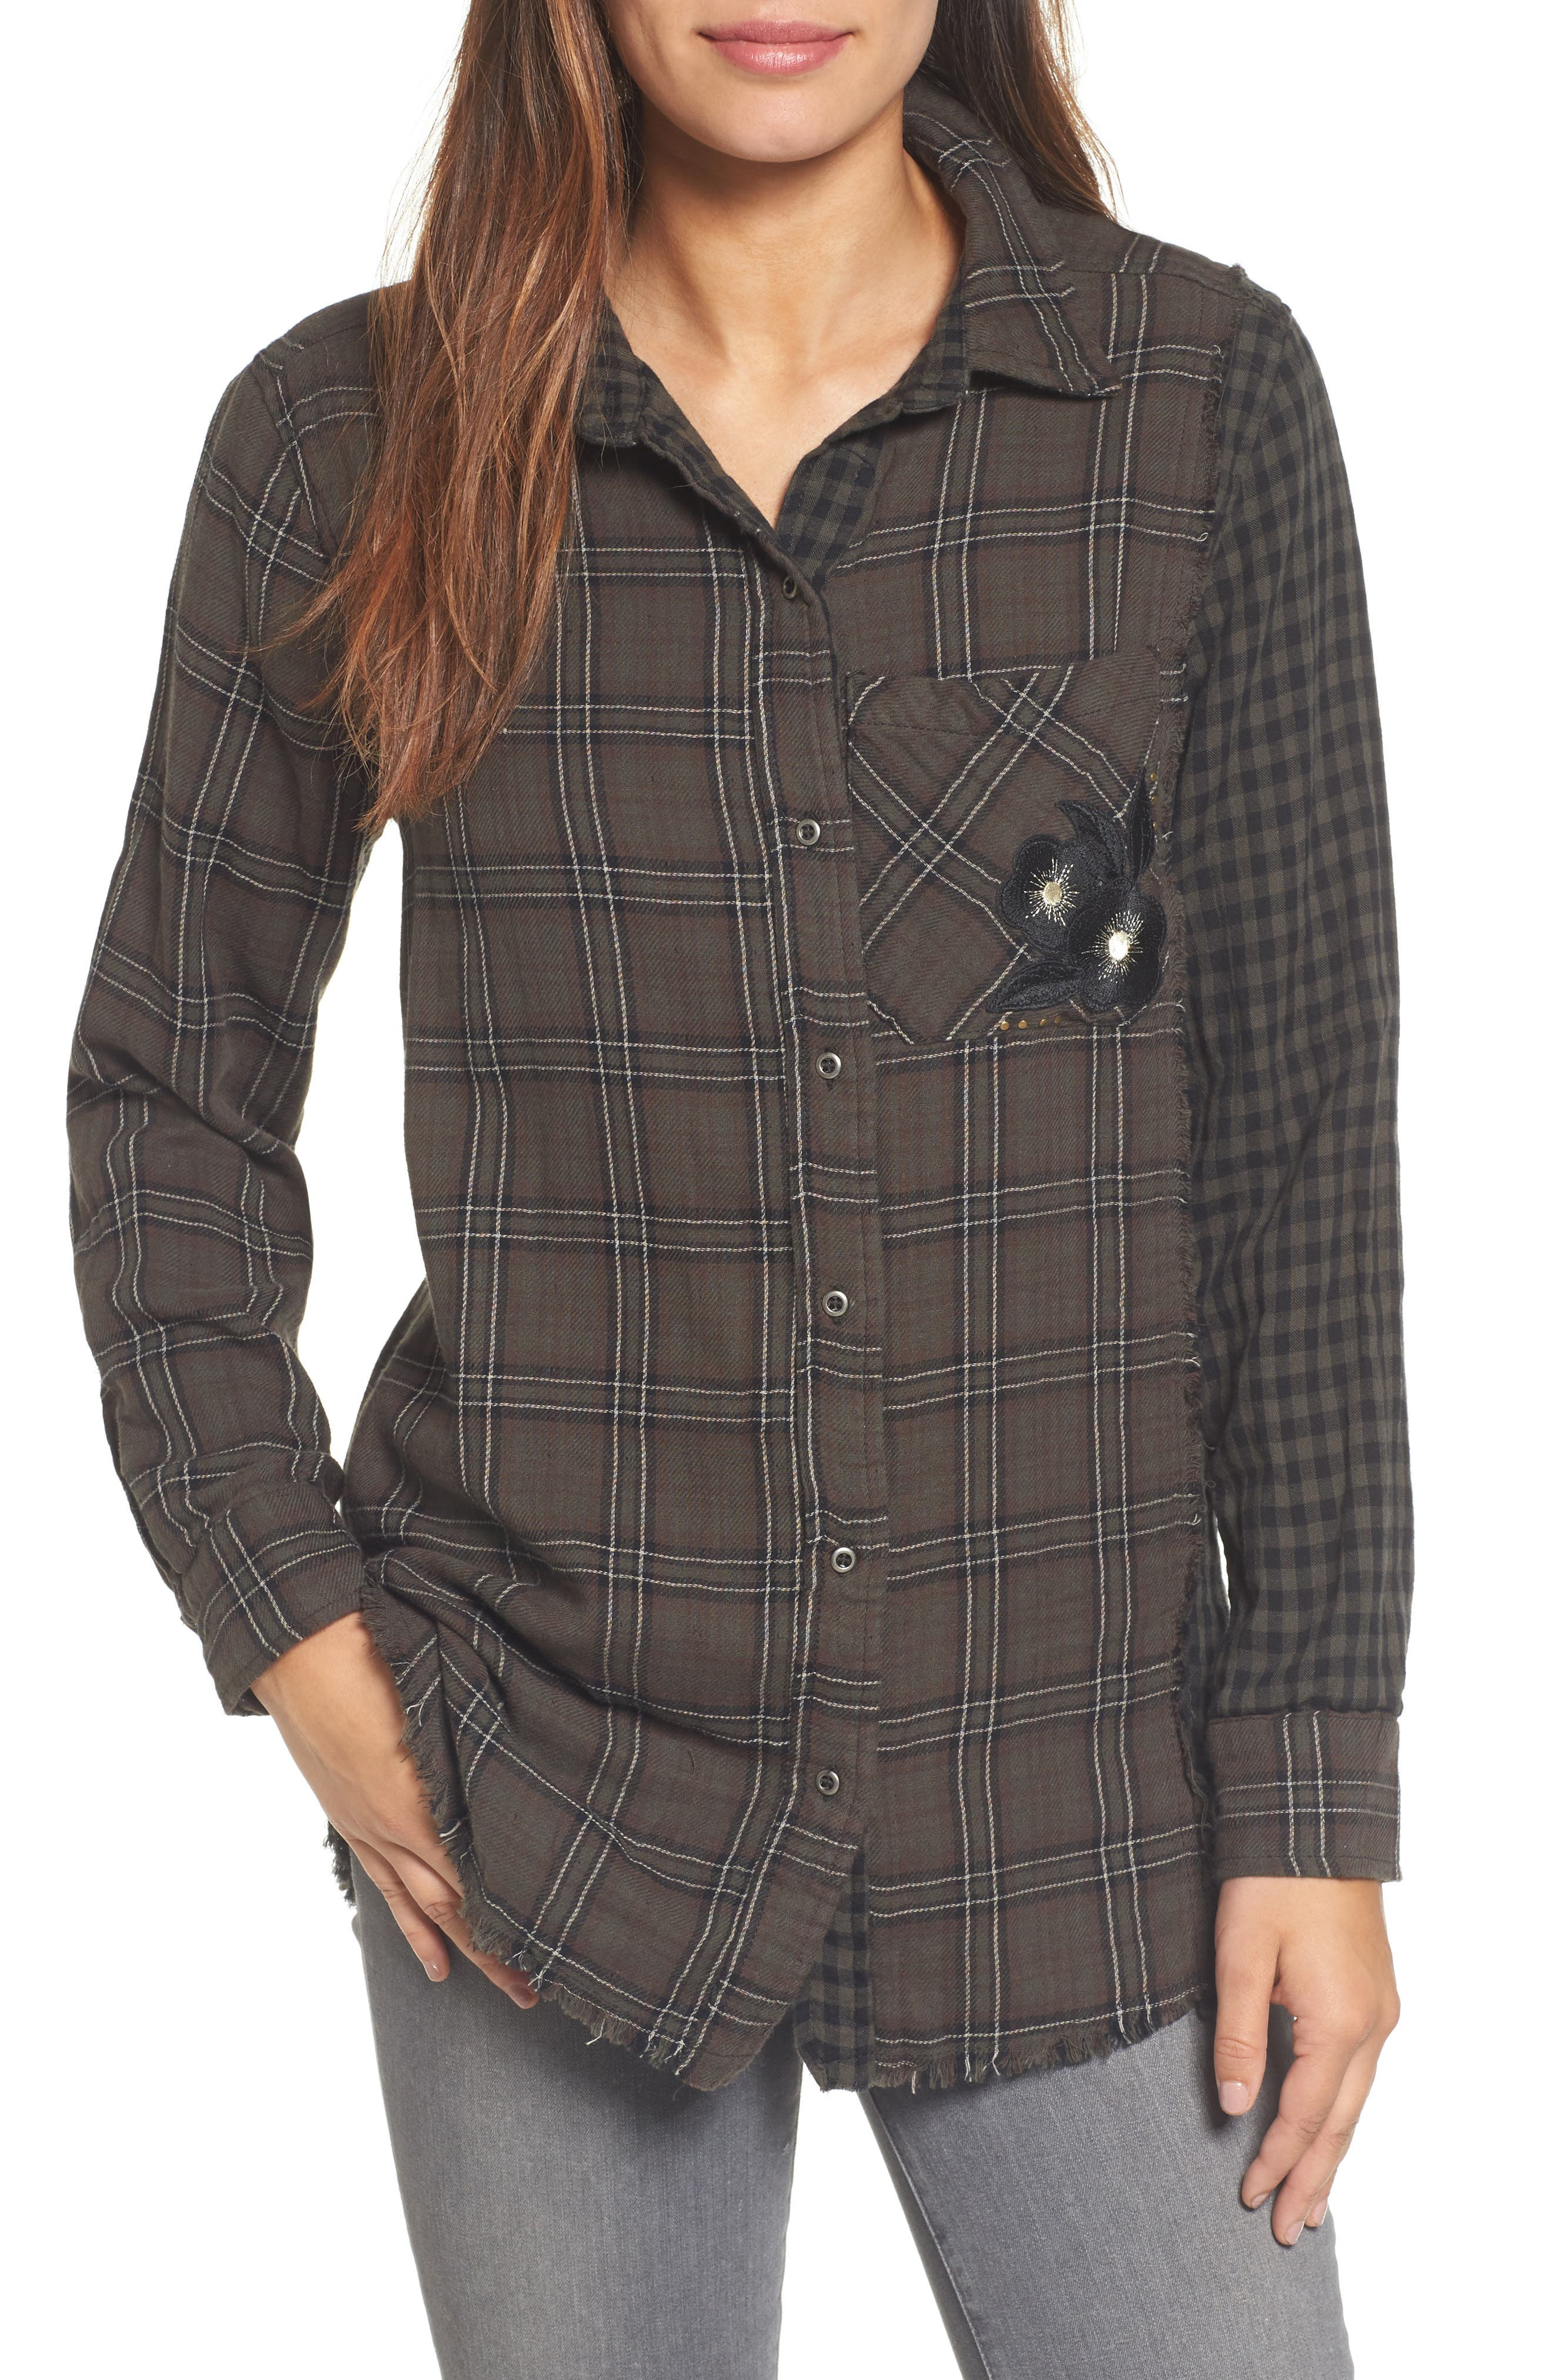 Contrast Sleeve Button-Down Top,                         Main,                         color, Brindle Olive